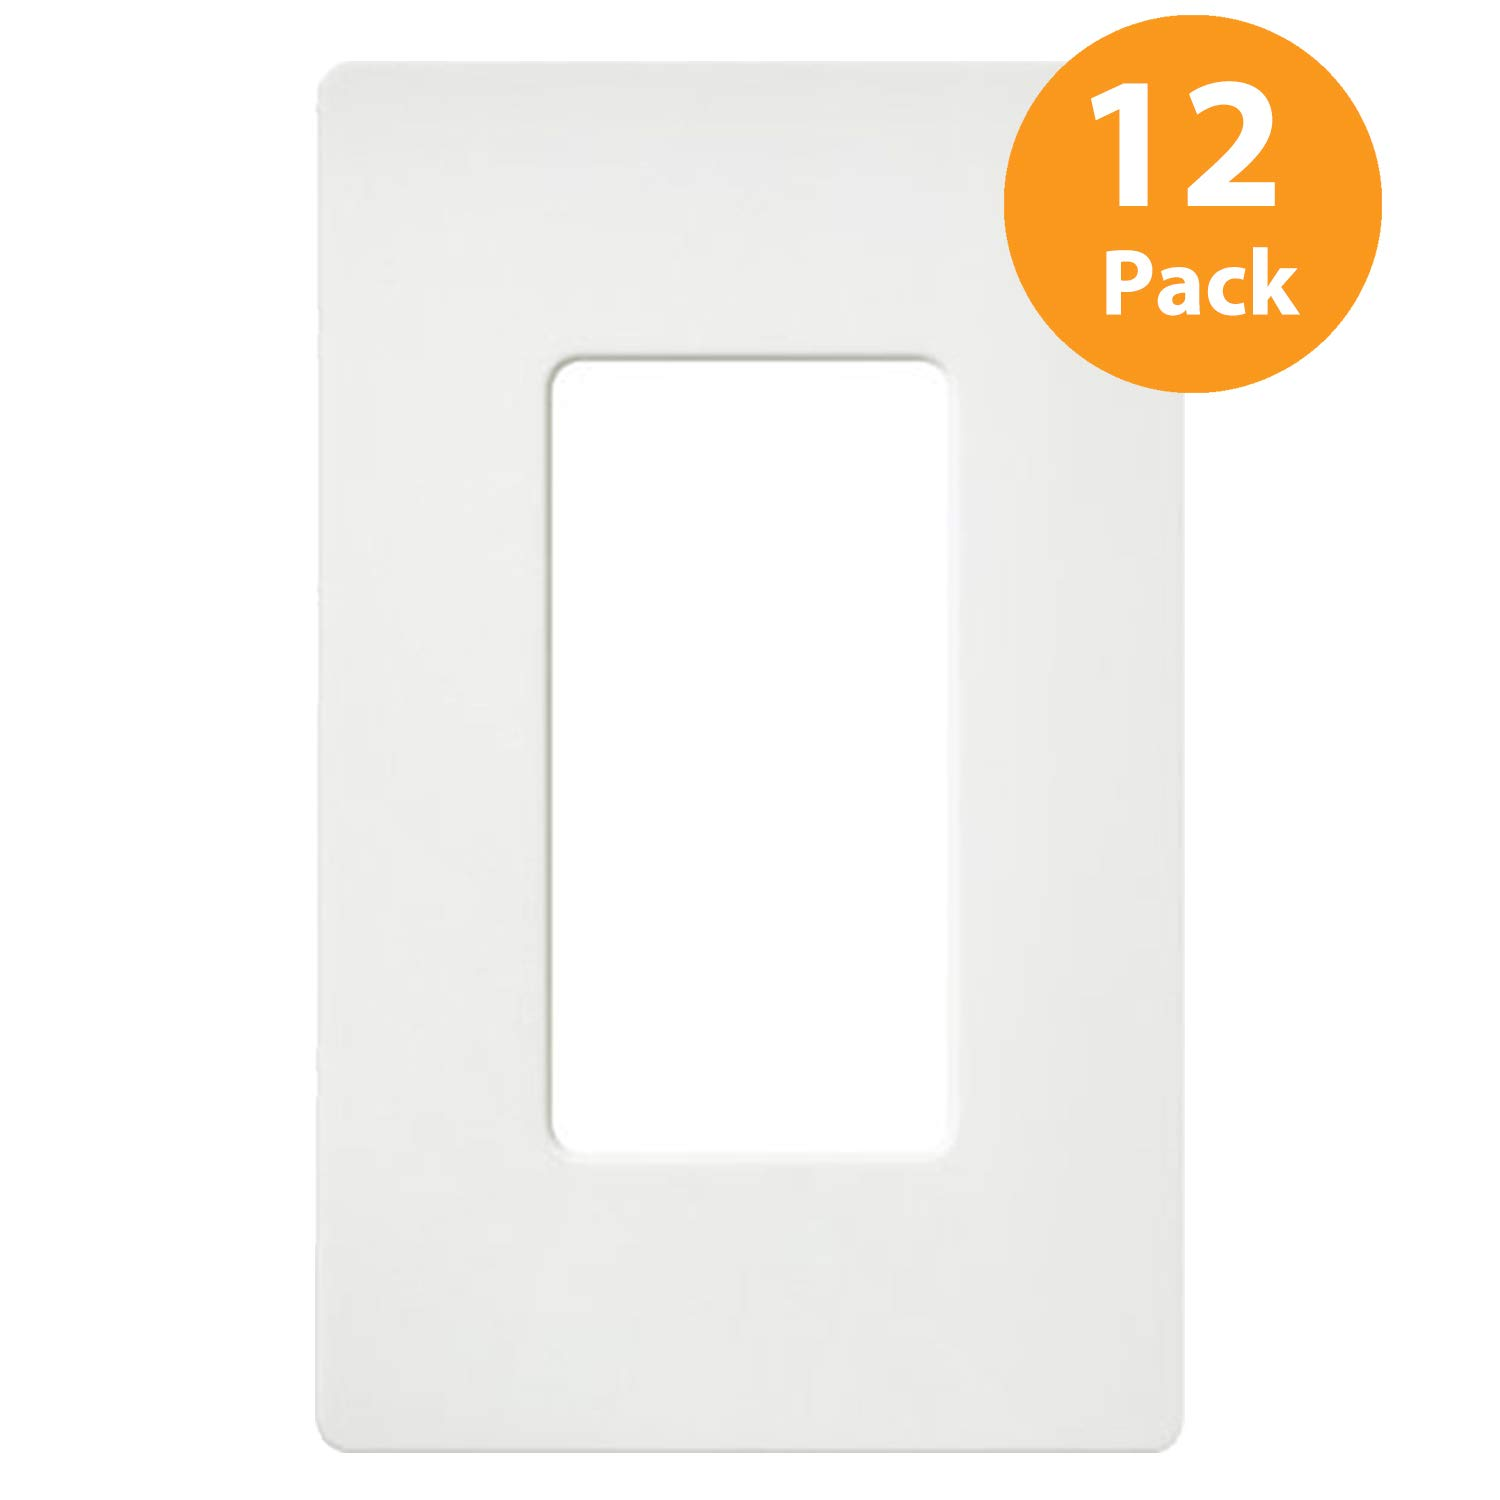 Hidden Screws 12-Pack Standard Size Outlet Covers for GFCIs Decor Receptacles and Light Switches Child Safe White 1-Gang Screwless Wall Plates by ELECTECK UL Listed Unbreakable